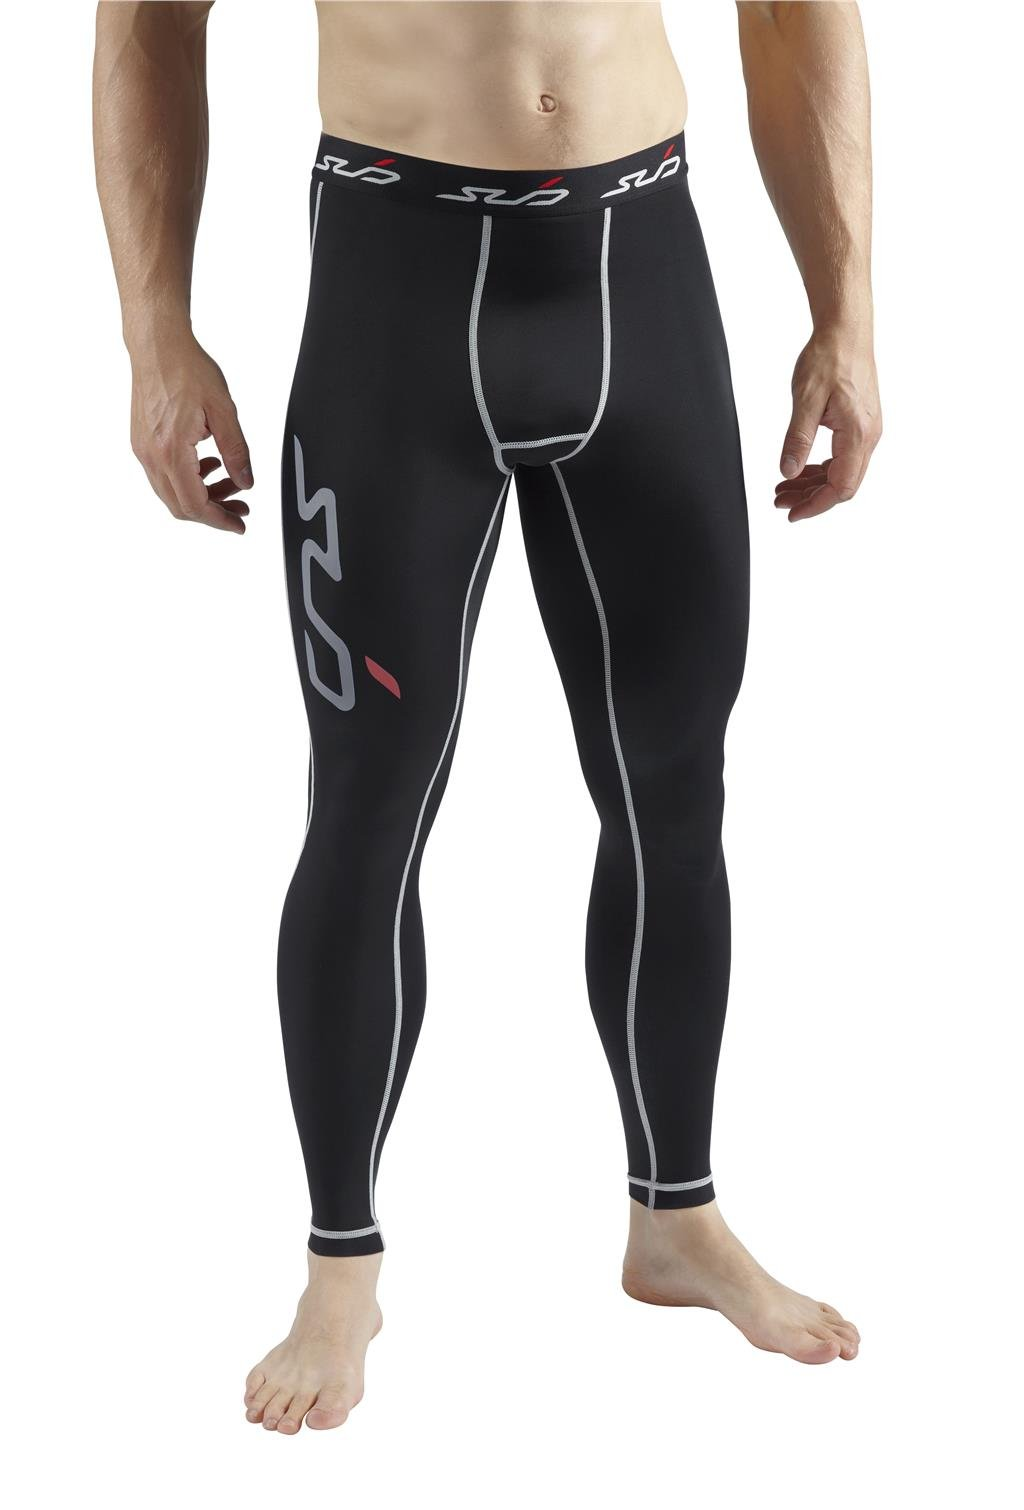 Shop for Men's Running Pants and Tights at REI - FREE SHIPPING With $50 minimum purchase. Top quality, great selection and expert advice you can trust. % Satisfaction Guarantee.